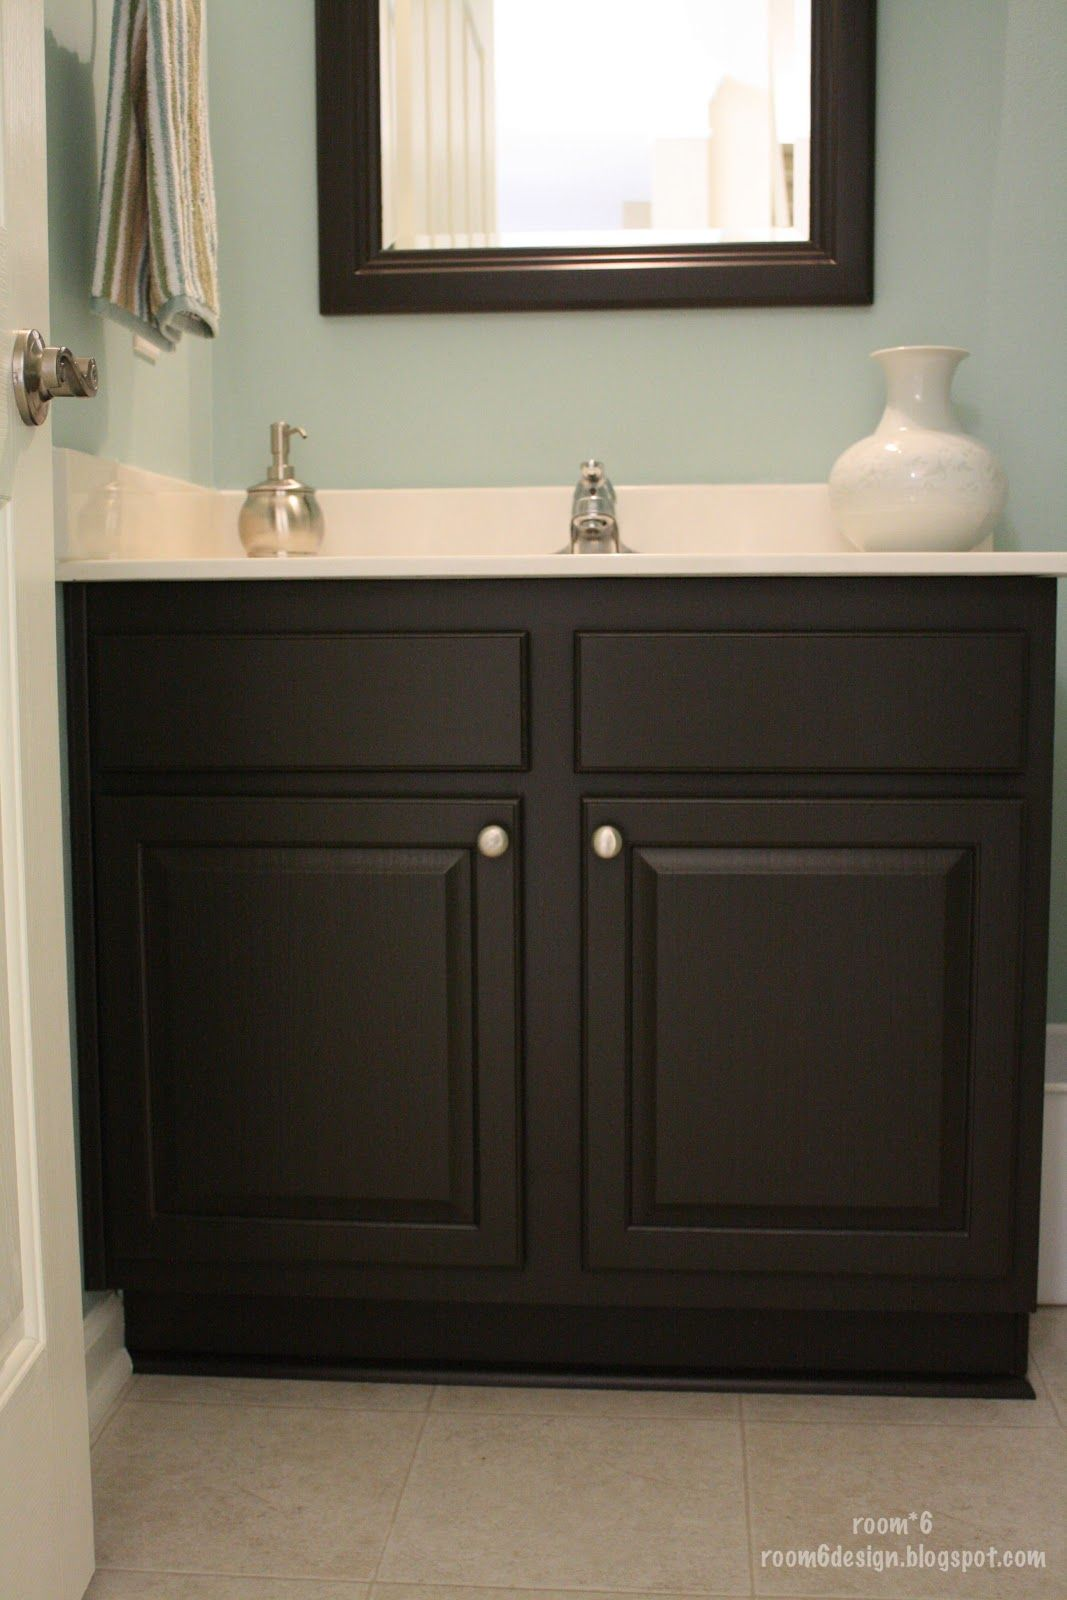 Room 6 The Powder Room Is Finished Bathroom Cabinet Colors Painted Vanity Bathroom Black Vanity Bathroom